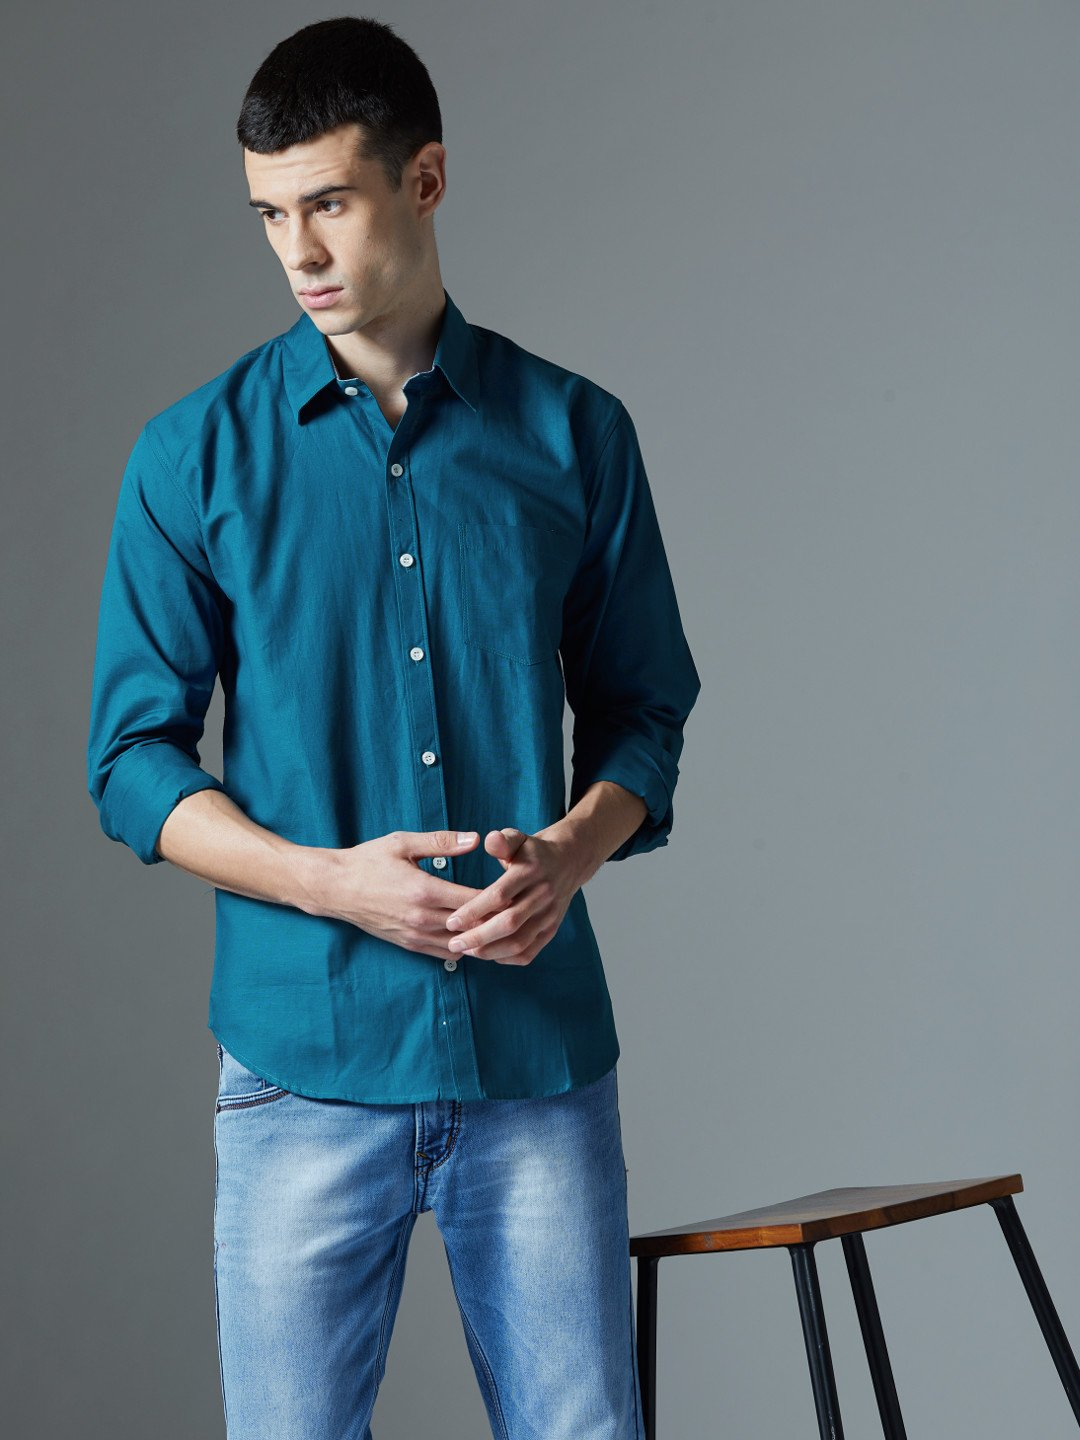 Cotton Linen Solid Casual Shirt By NoLogo